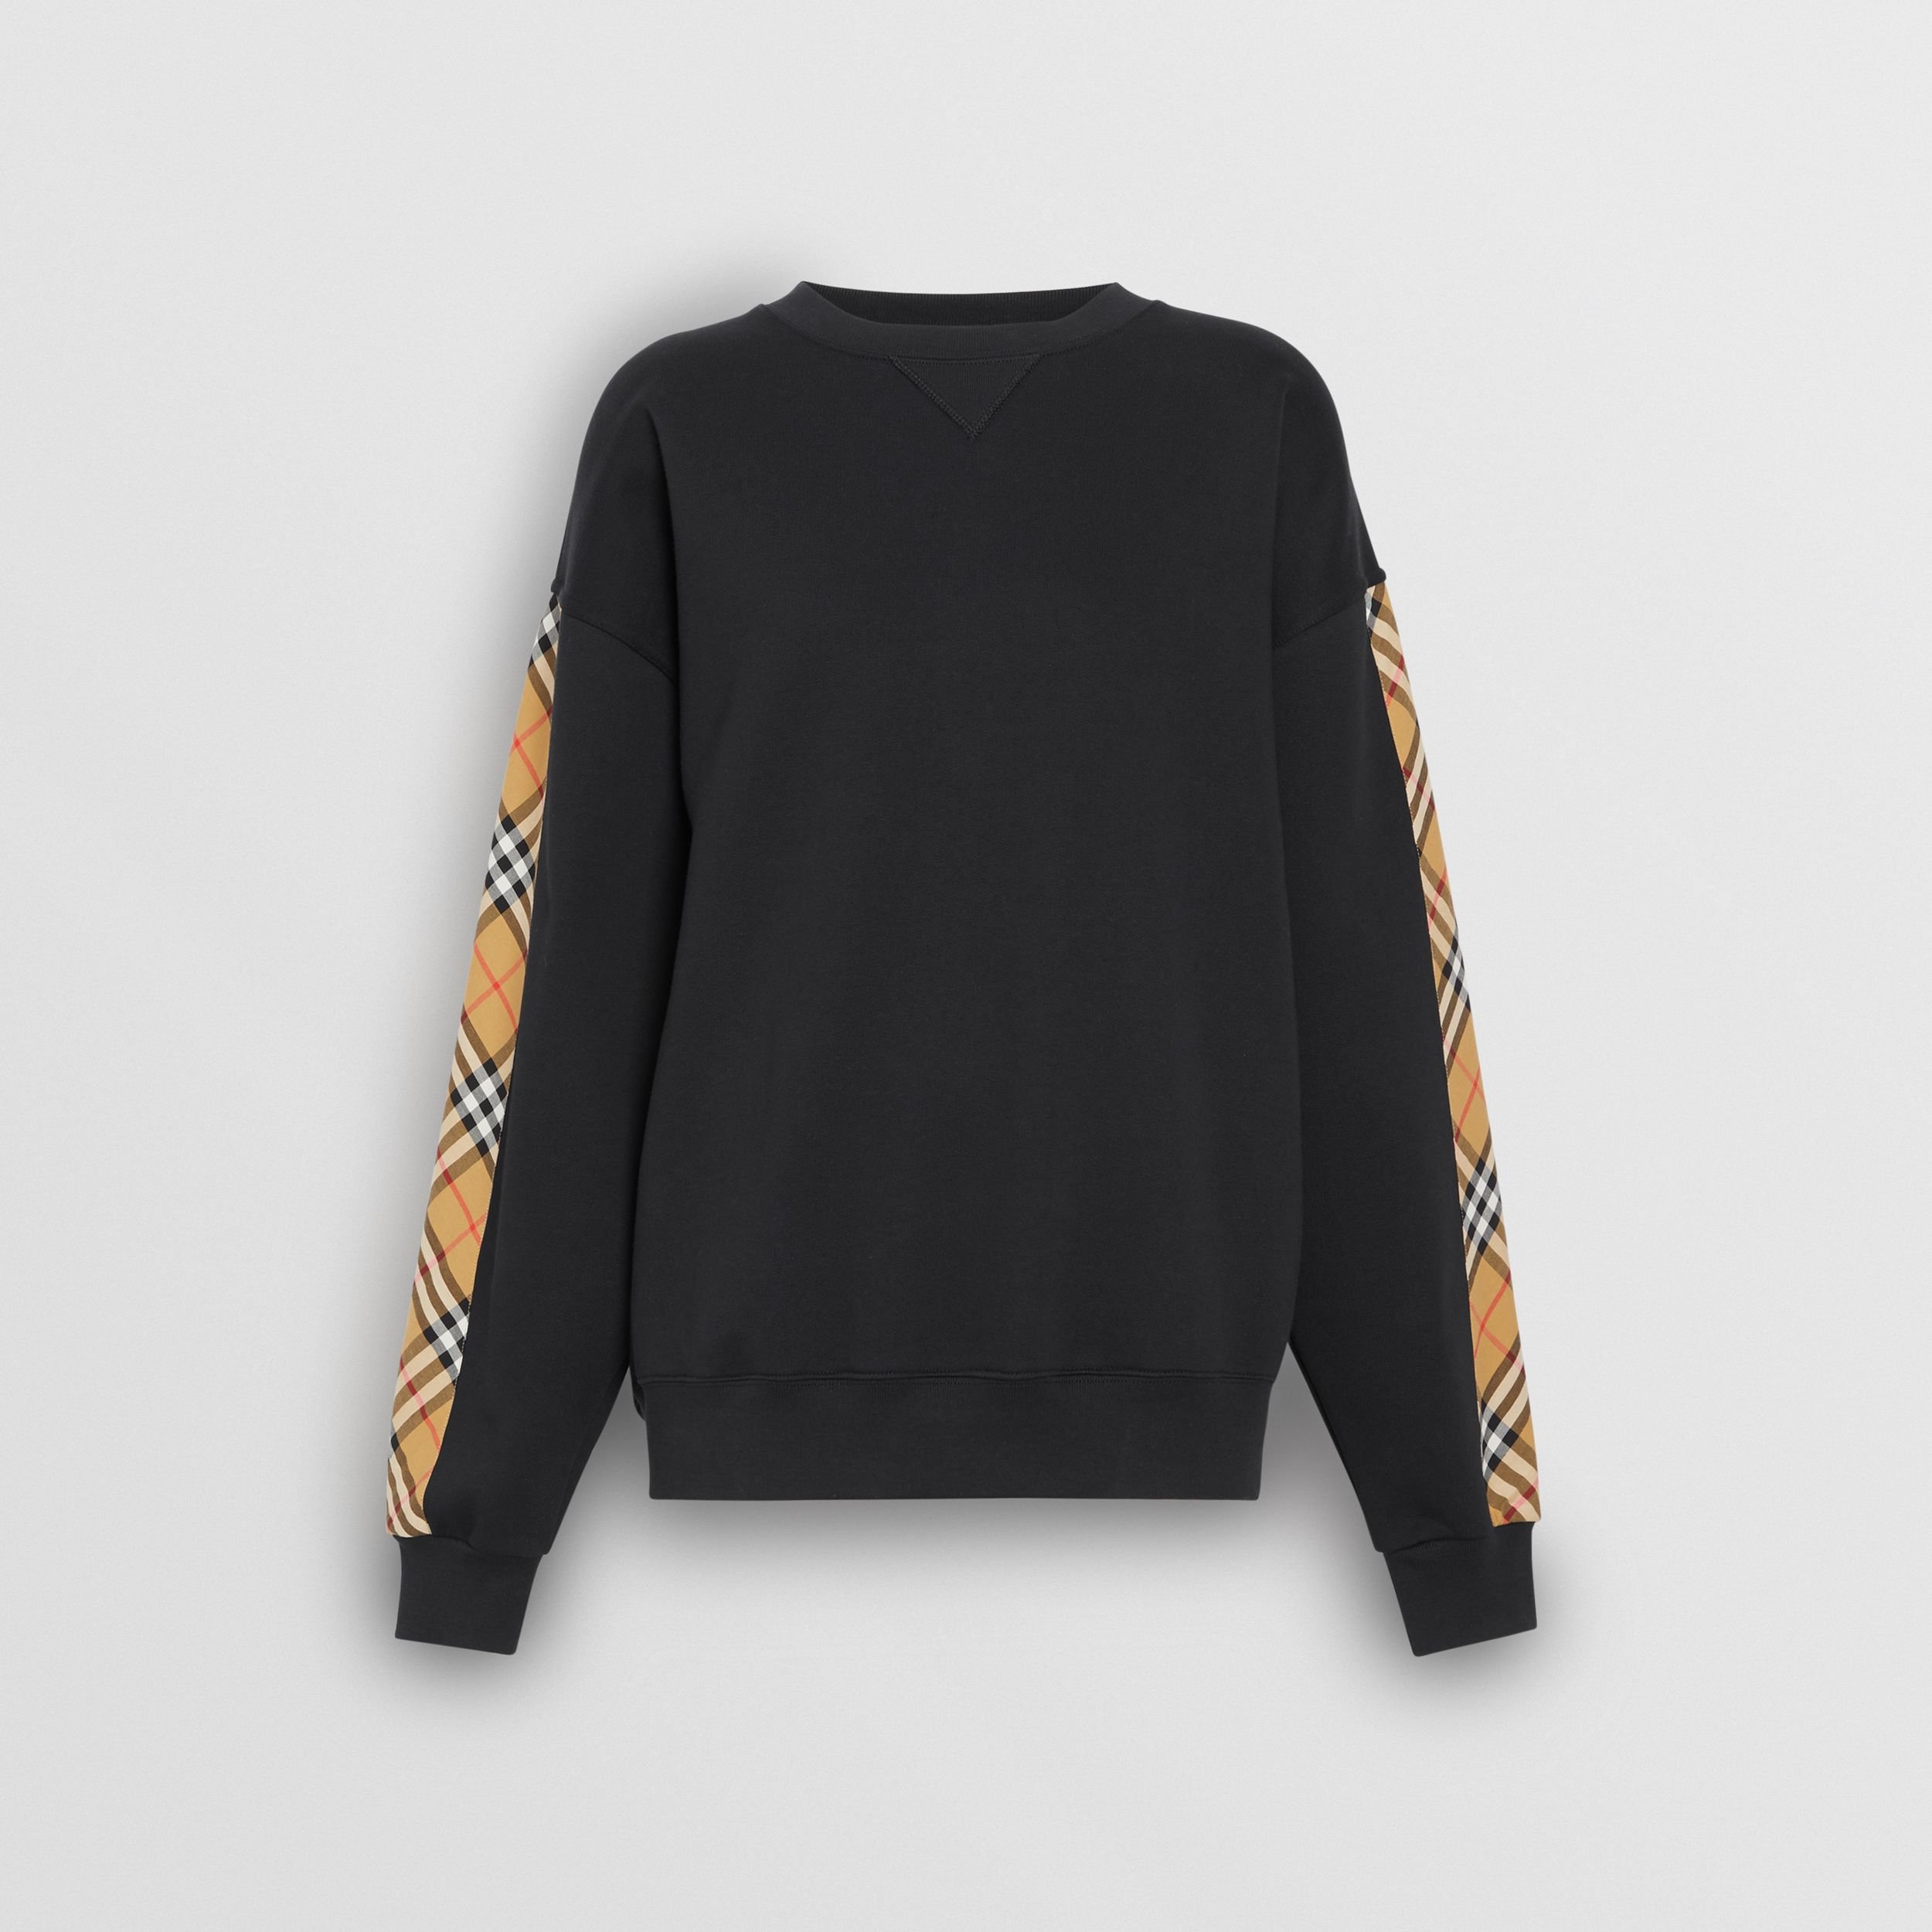 Vintage Check Detail Cotton Blend Sweatshirt in Black - Women | Burberry United States - 4